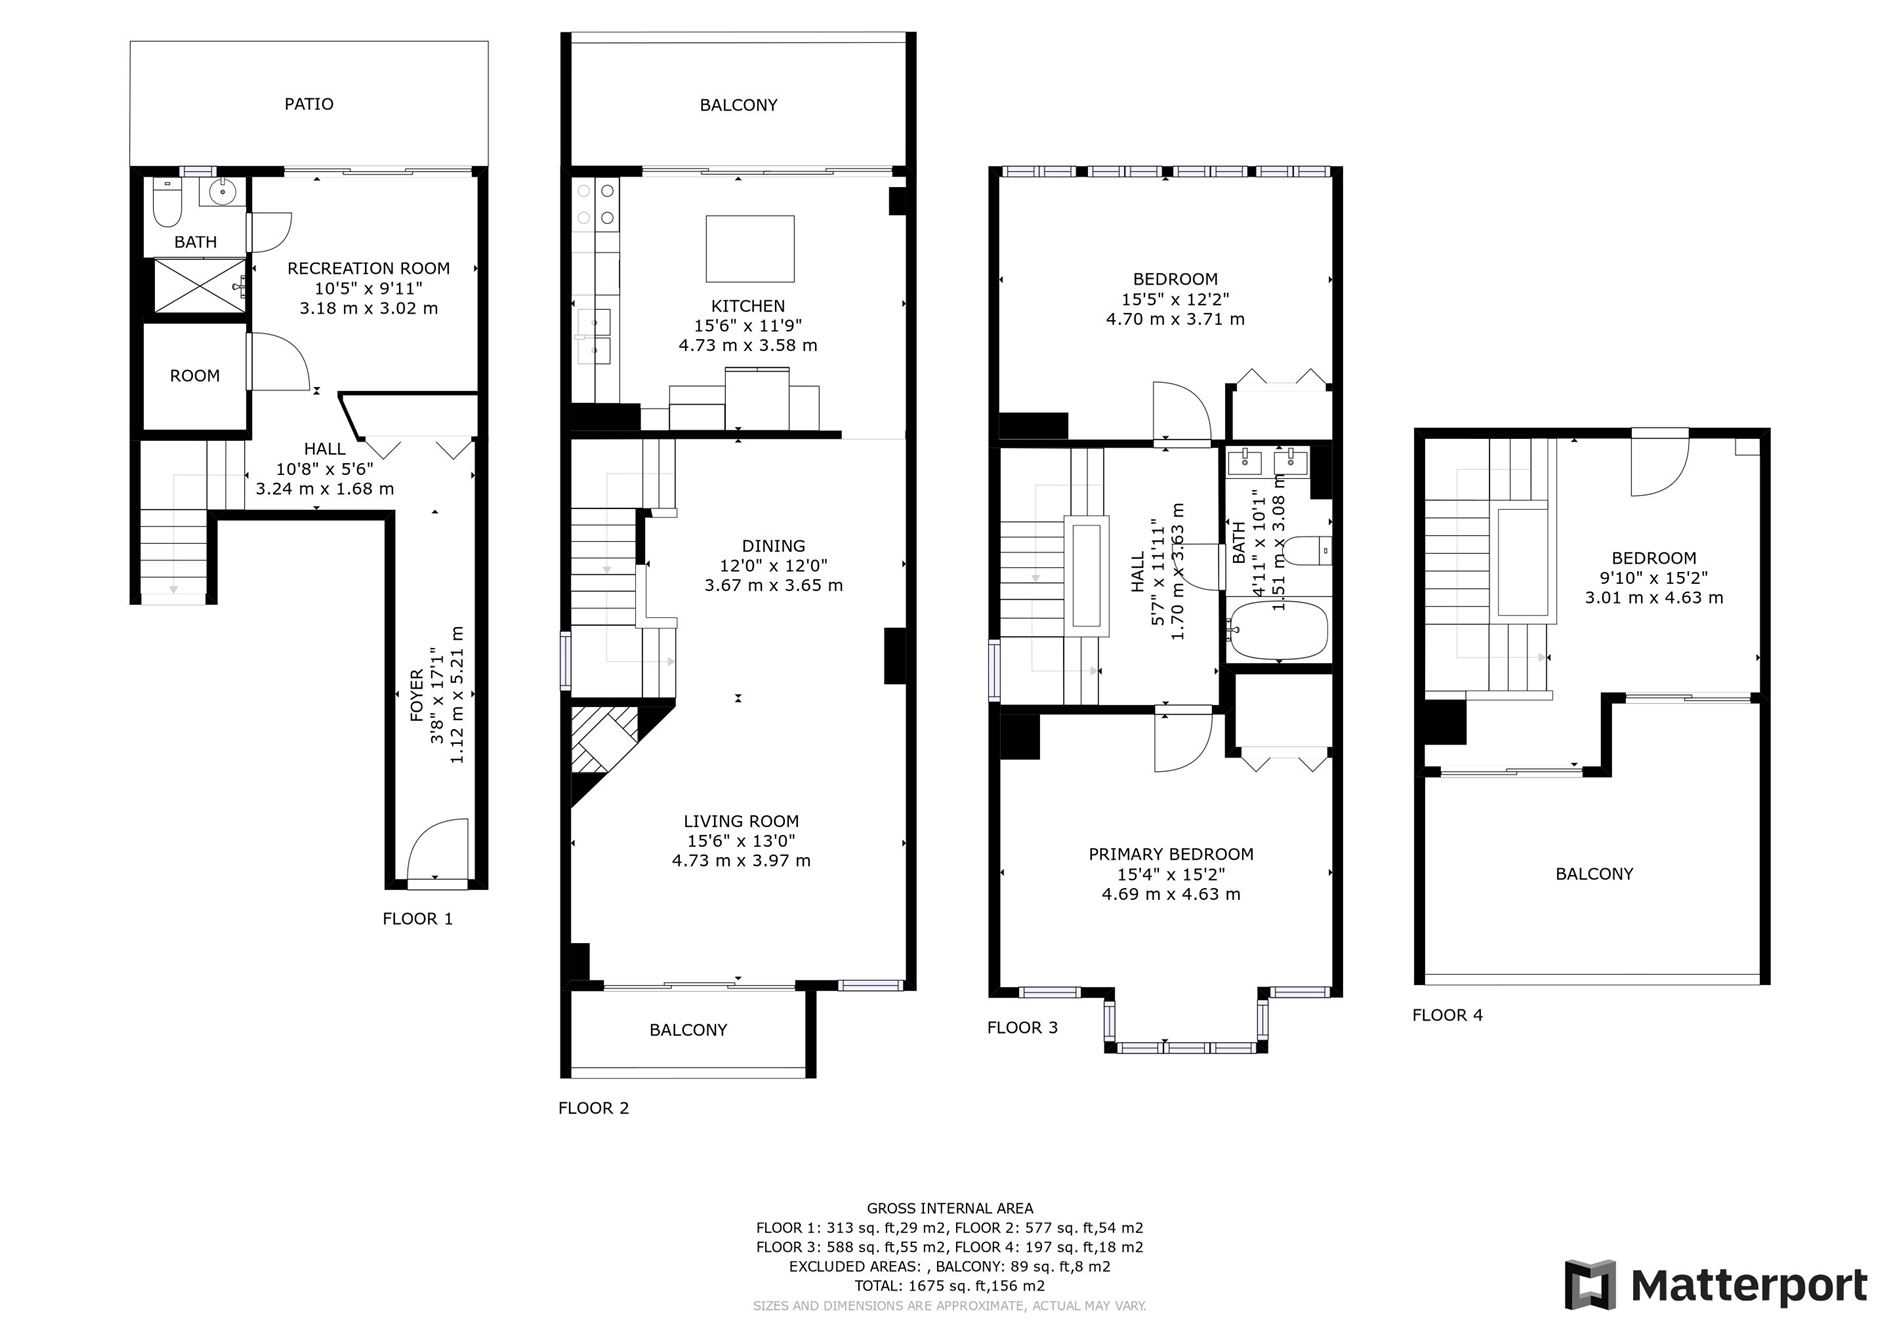 Image 35 of 40 showing inside of 3 Bedroom Condo Townhouse 3-Storey for Sale at 14 Cumberland Lane Unit# 7, Ajax L1S7K4